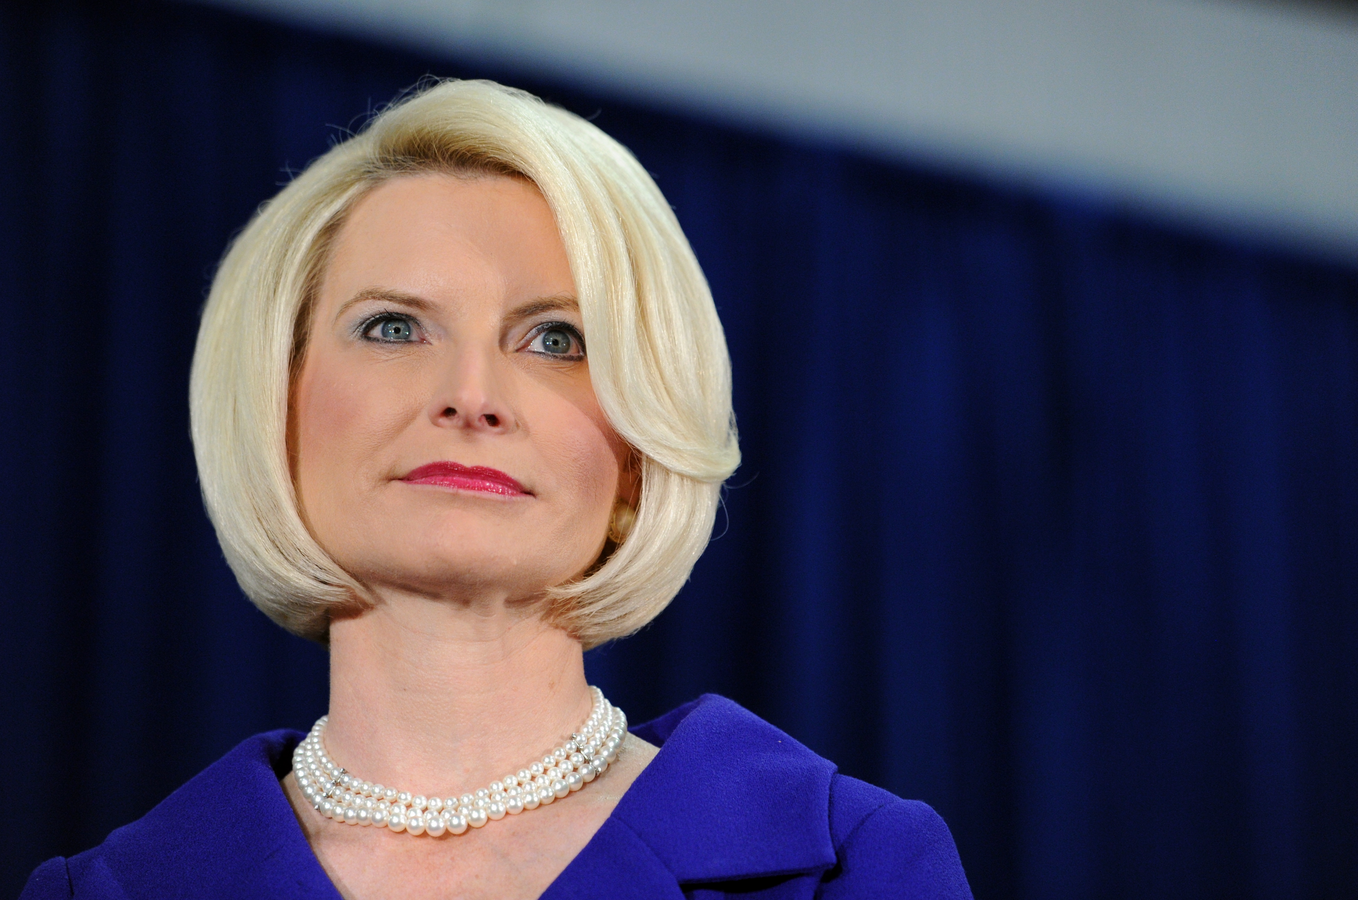 Callista Gingrich, wife of former House Speaker Newt Gingrich, has been nominated by President Donald Trump to be the new U.S. ambassador to the Holy See. She is pictured as her husband speaks at Peachtree Academy in Covington, Georgia, in this Feb. 29, 2012, file photo. (CNS photo/Erik S. Lesser, EPA)